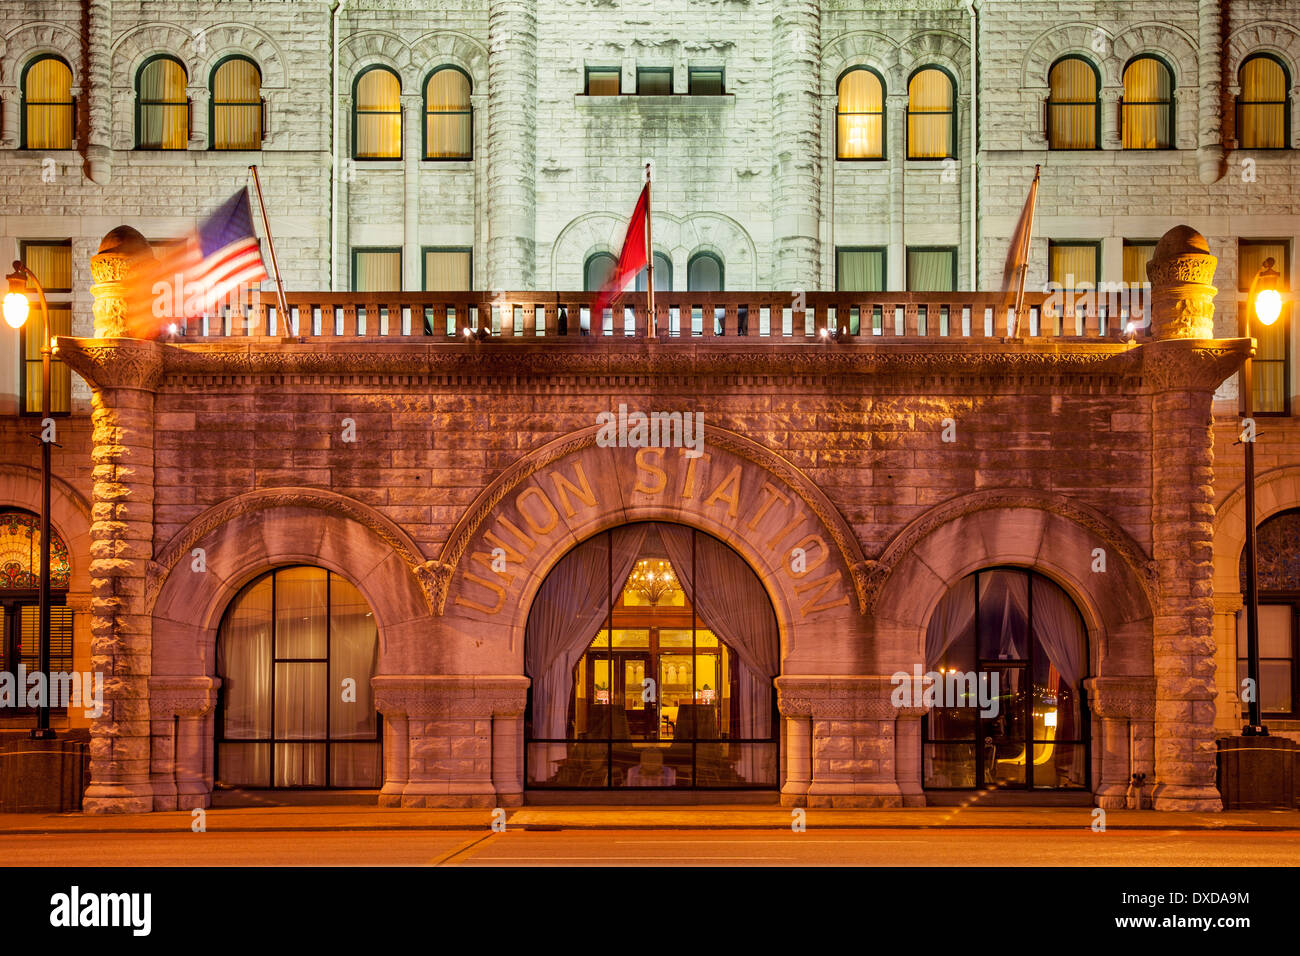 Union station restored train station now a luxury hotel nashville tennessee usa